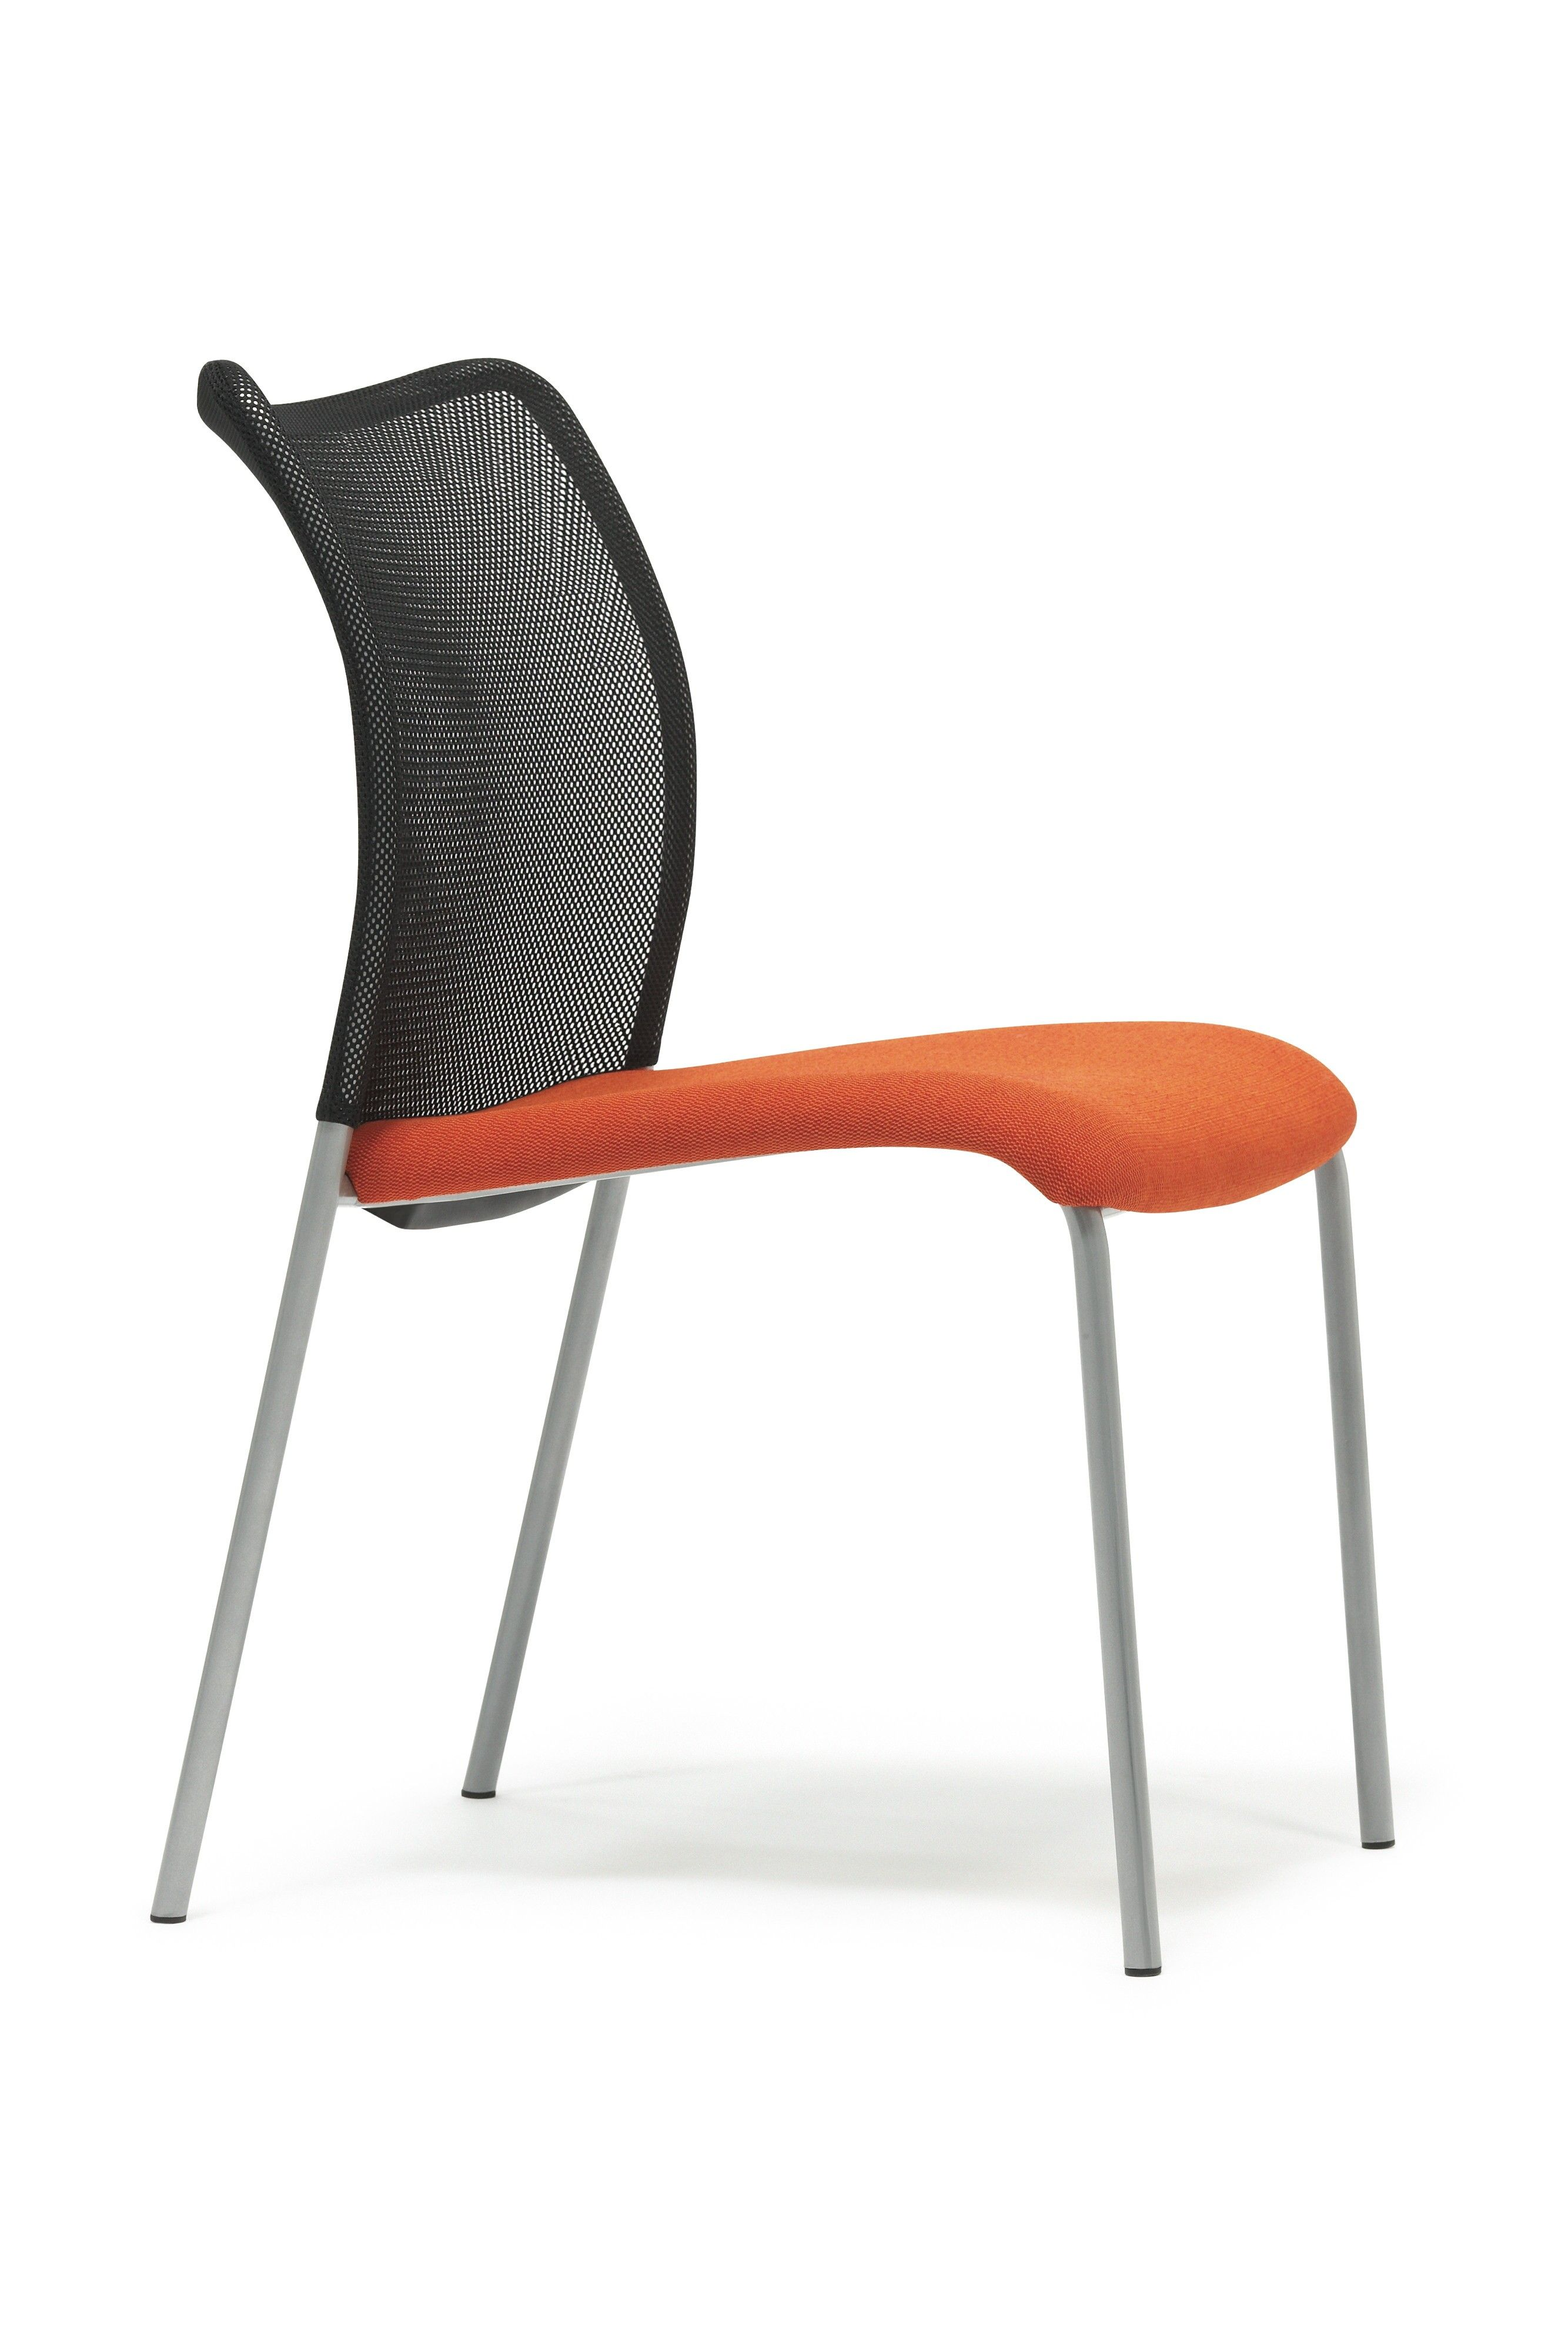 Allseating Inertia Mesh Side Chair Side Chairs Chair